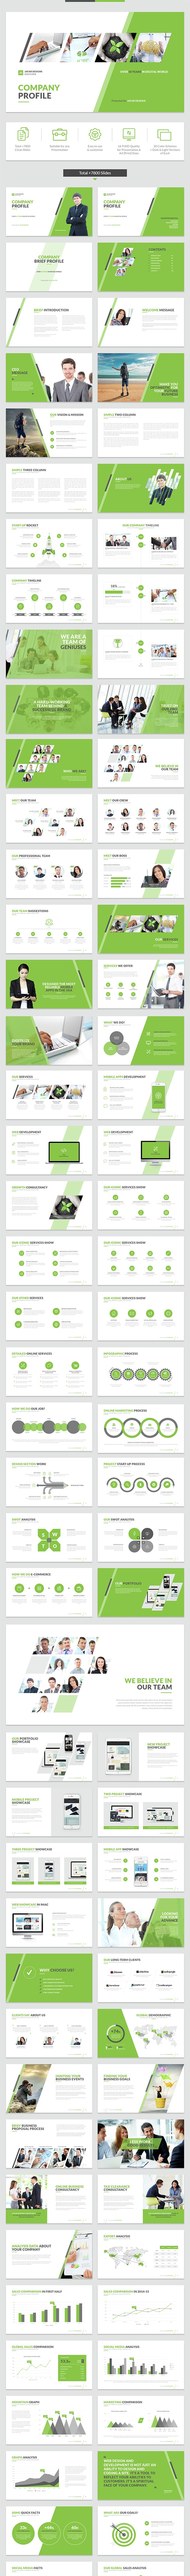 Company Profile PowerPoint Template - Business PowerPoint Templates